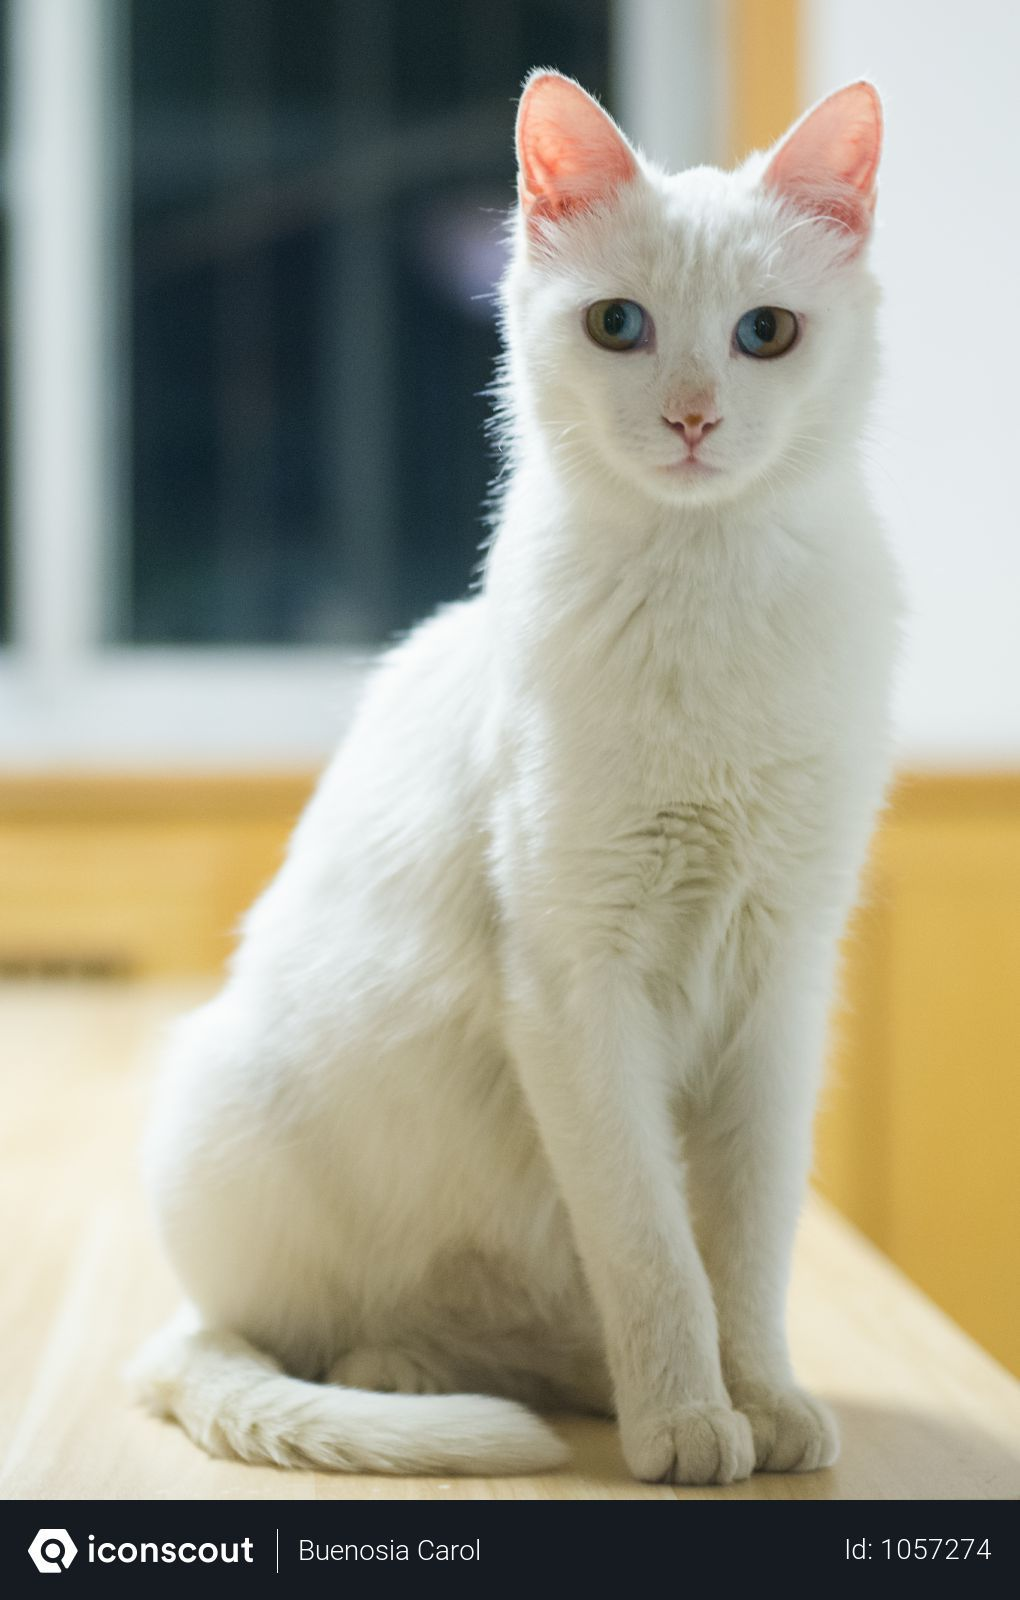 Free Mysterious White Cat Photo Download In Png Jpg Format Pretty Cats Cute Cats Photos Cat Photo